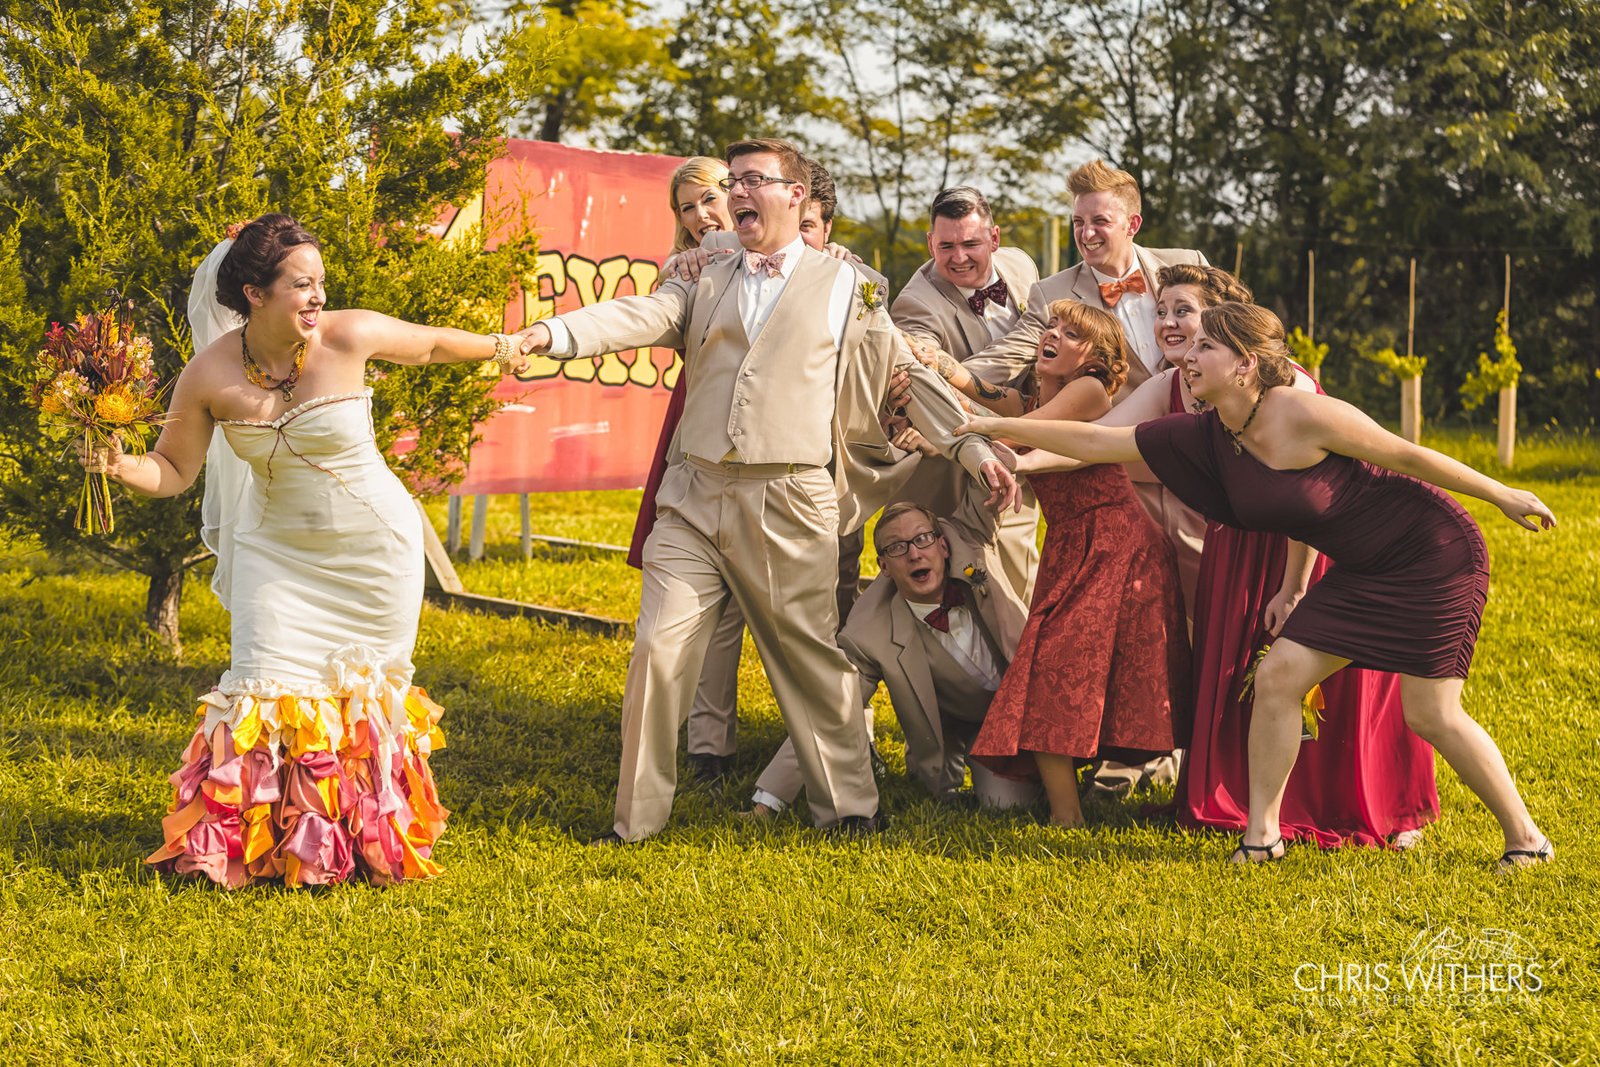 Springfield Illinois Wedding Photographer - Chris Withers Photography (39 of 159)